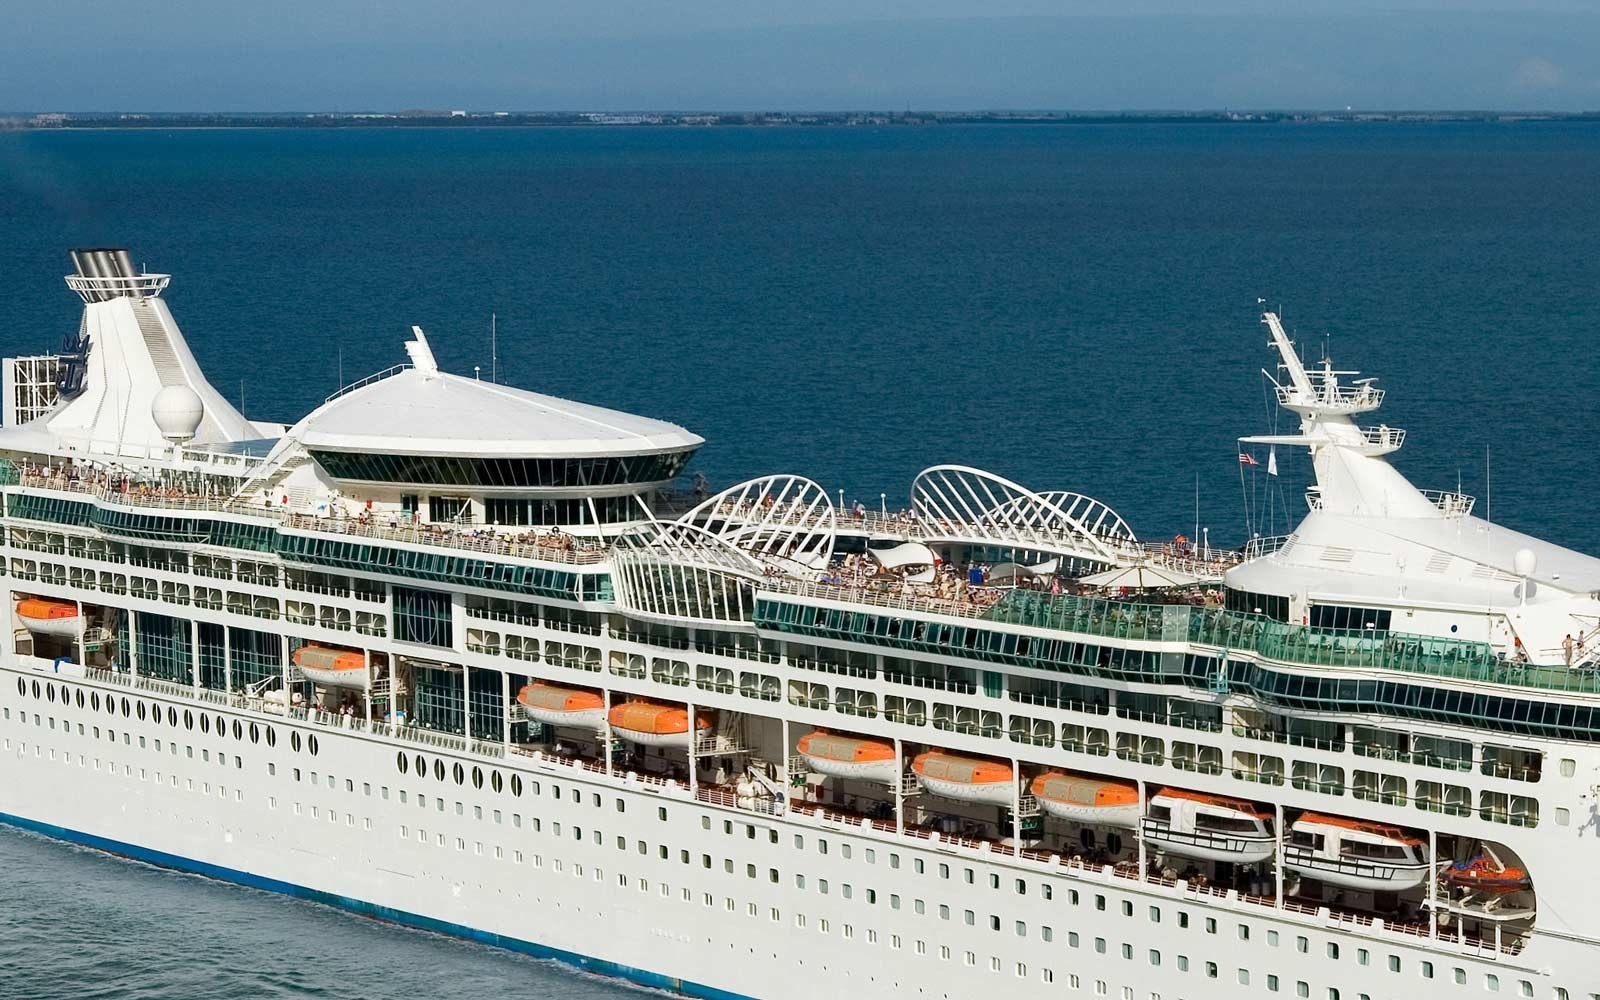 Five Things to Know About Royal Caribbean International's Grandeur of the Seas Cruise Ship